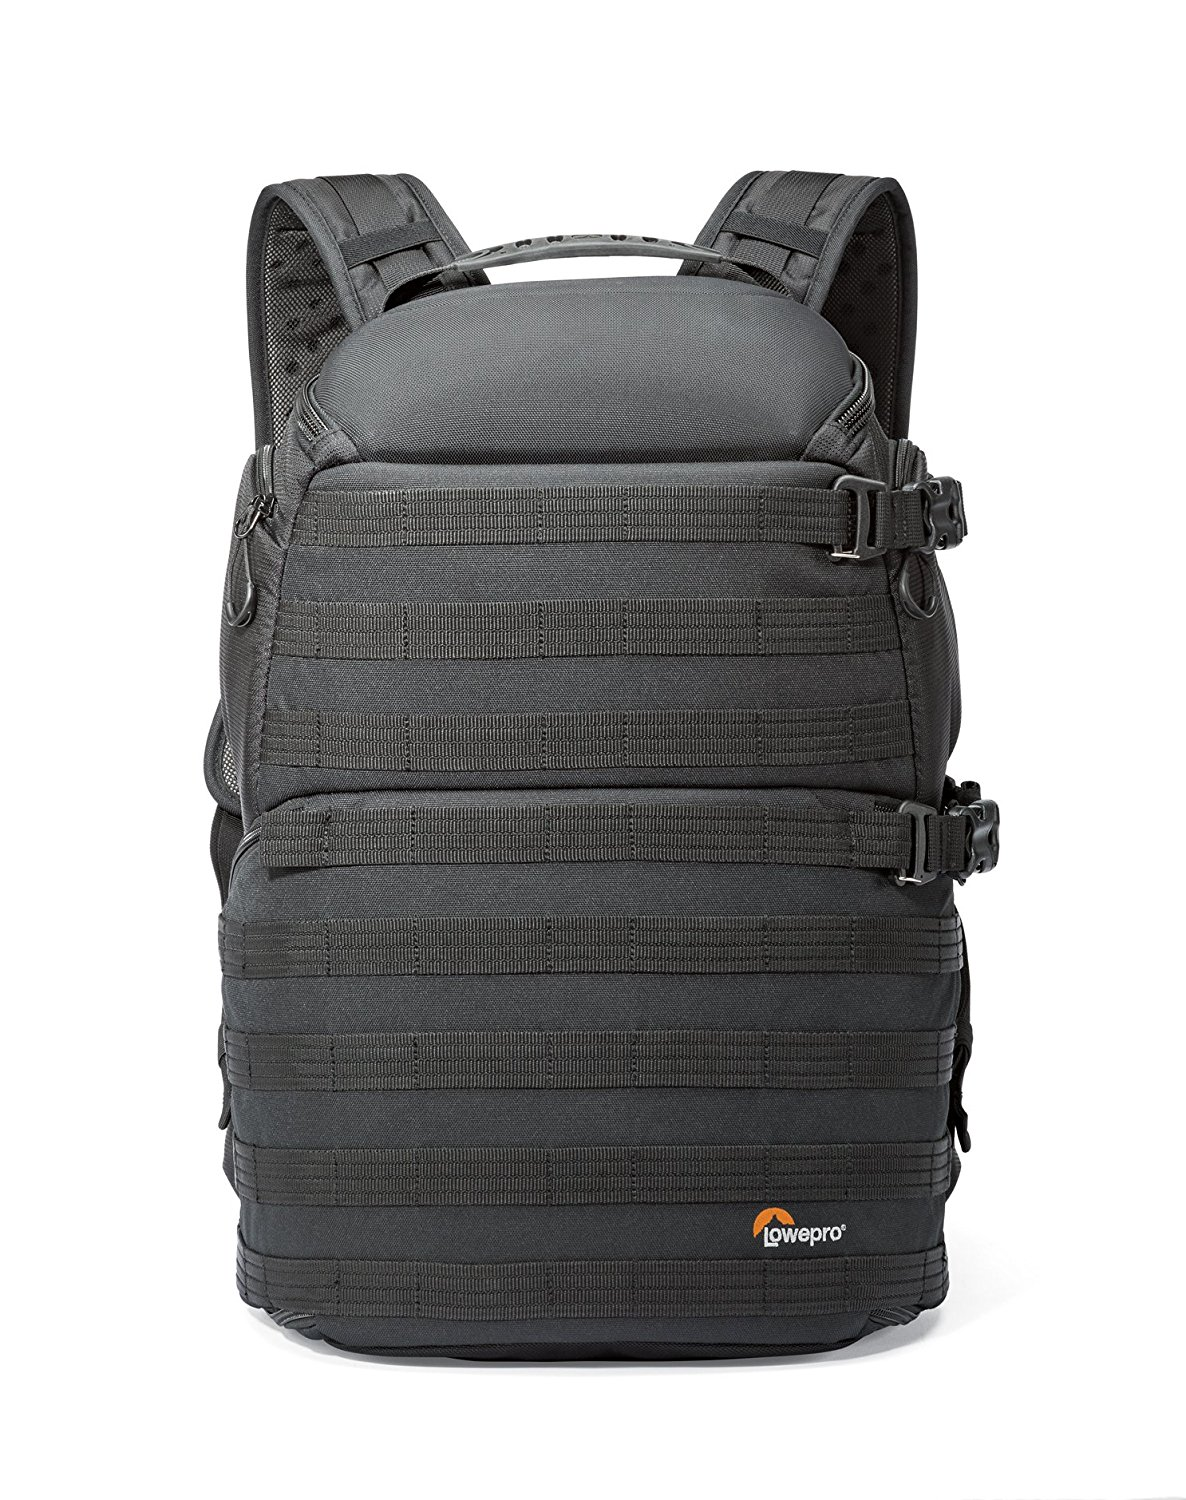 Lowepro Passport Sling III Camera Travel Bag with Shoulder Strap